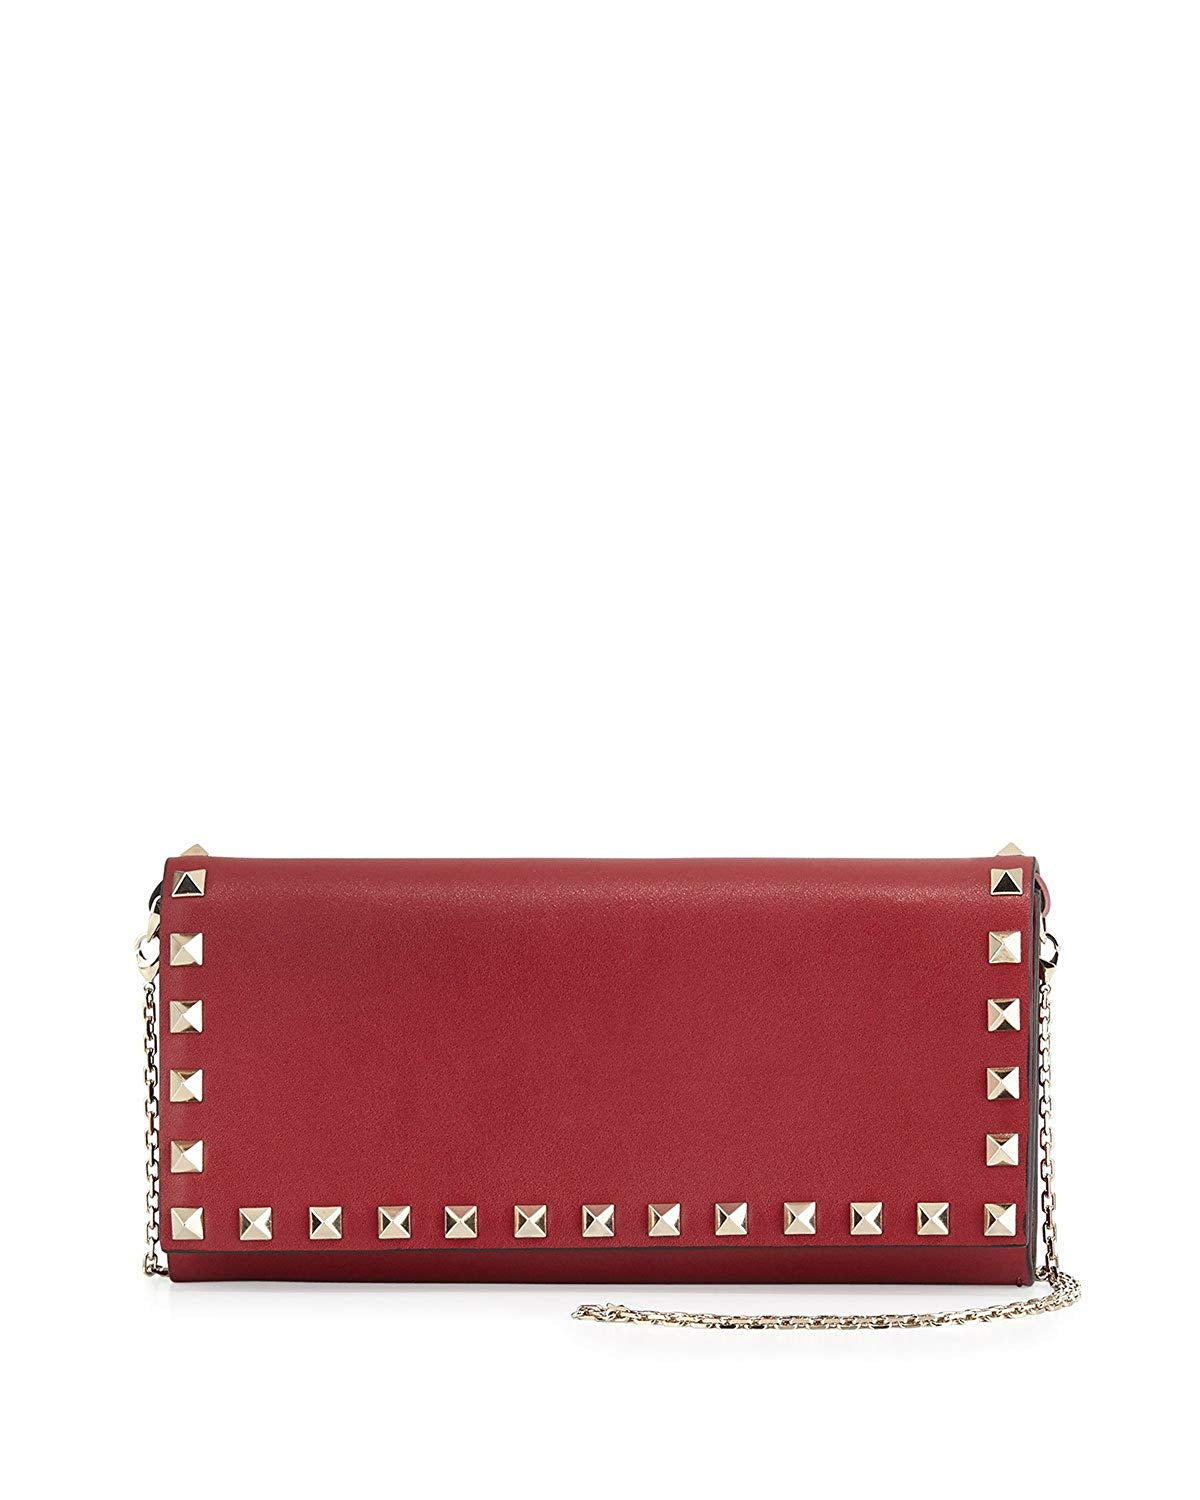 Valentino Rockstud Wallet on a Chain Leather Bag Red Authentic